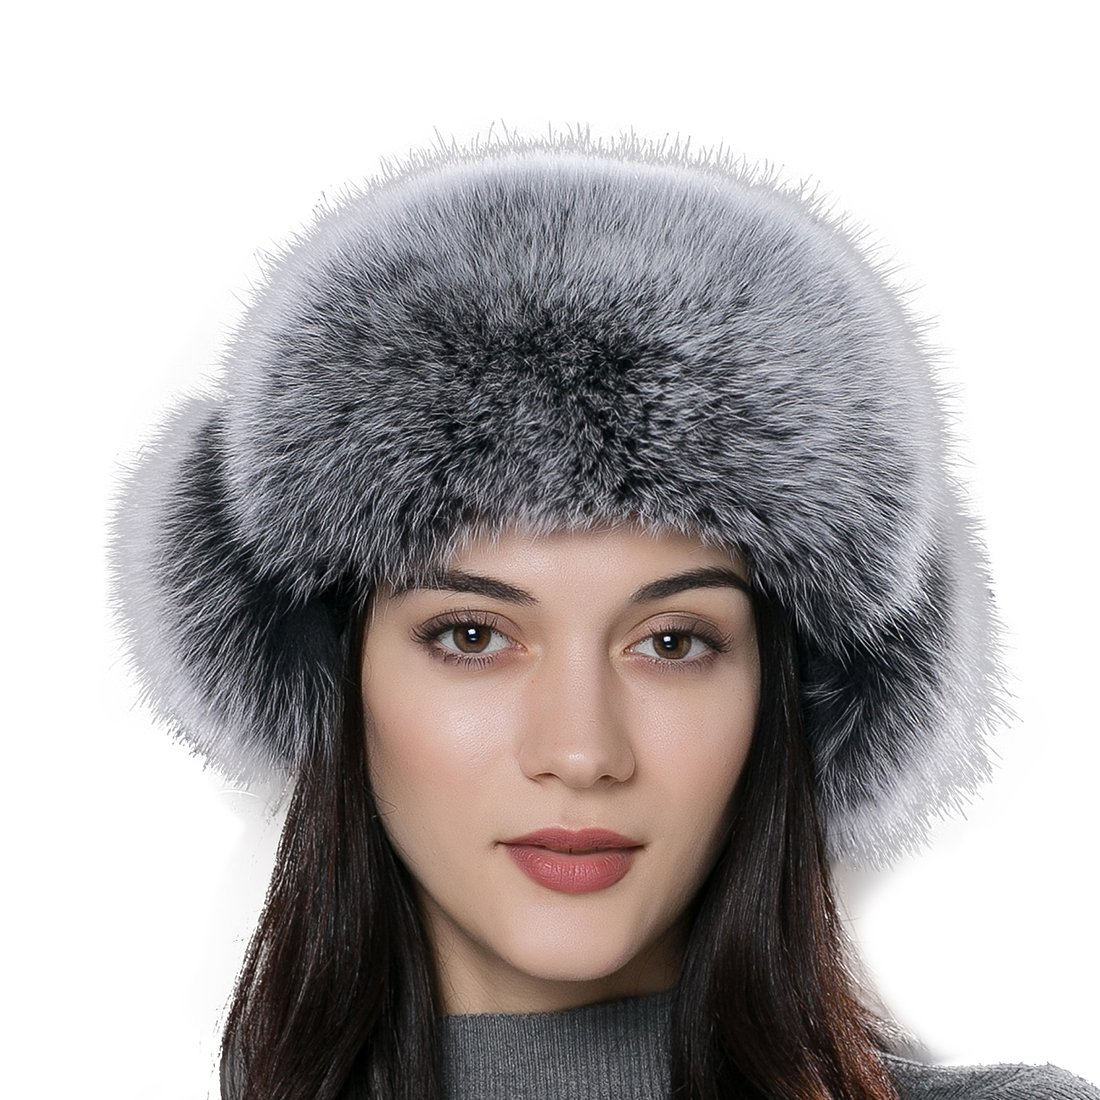 URSFUR Women Russian Rex Rabbit Fur Trapper Hat with Fox Fur Trim Multicolor .Ltd. B01MEC8AG7